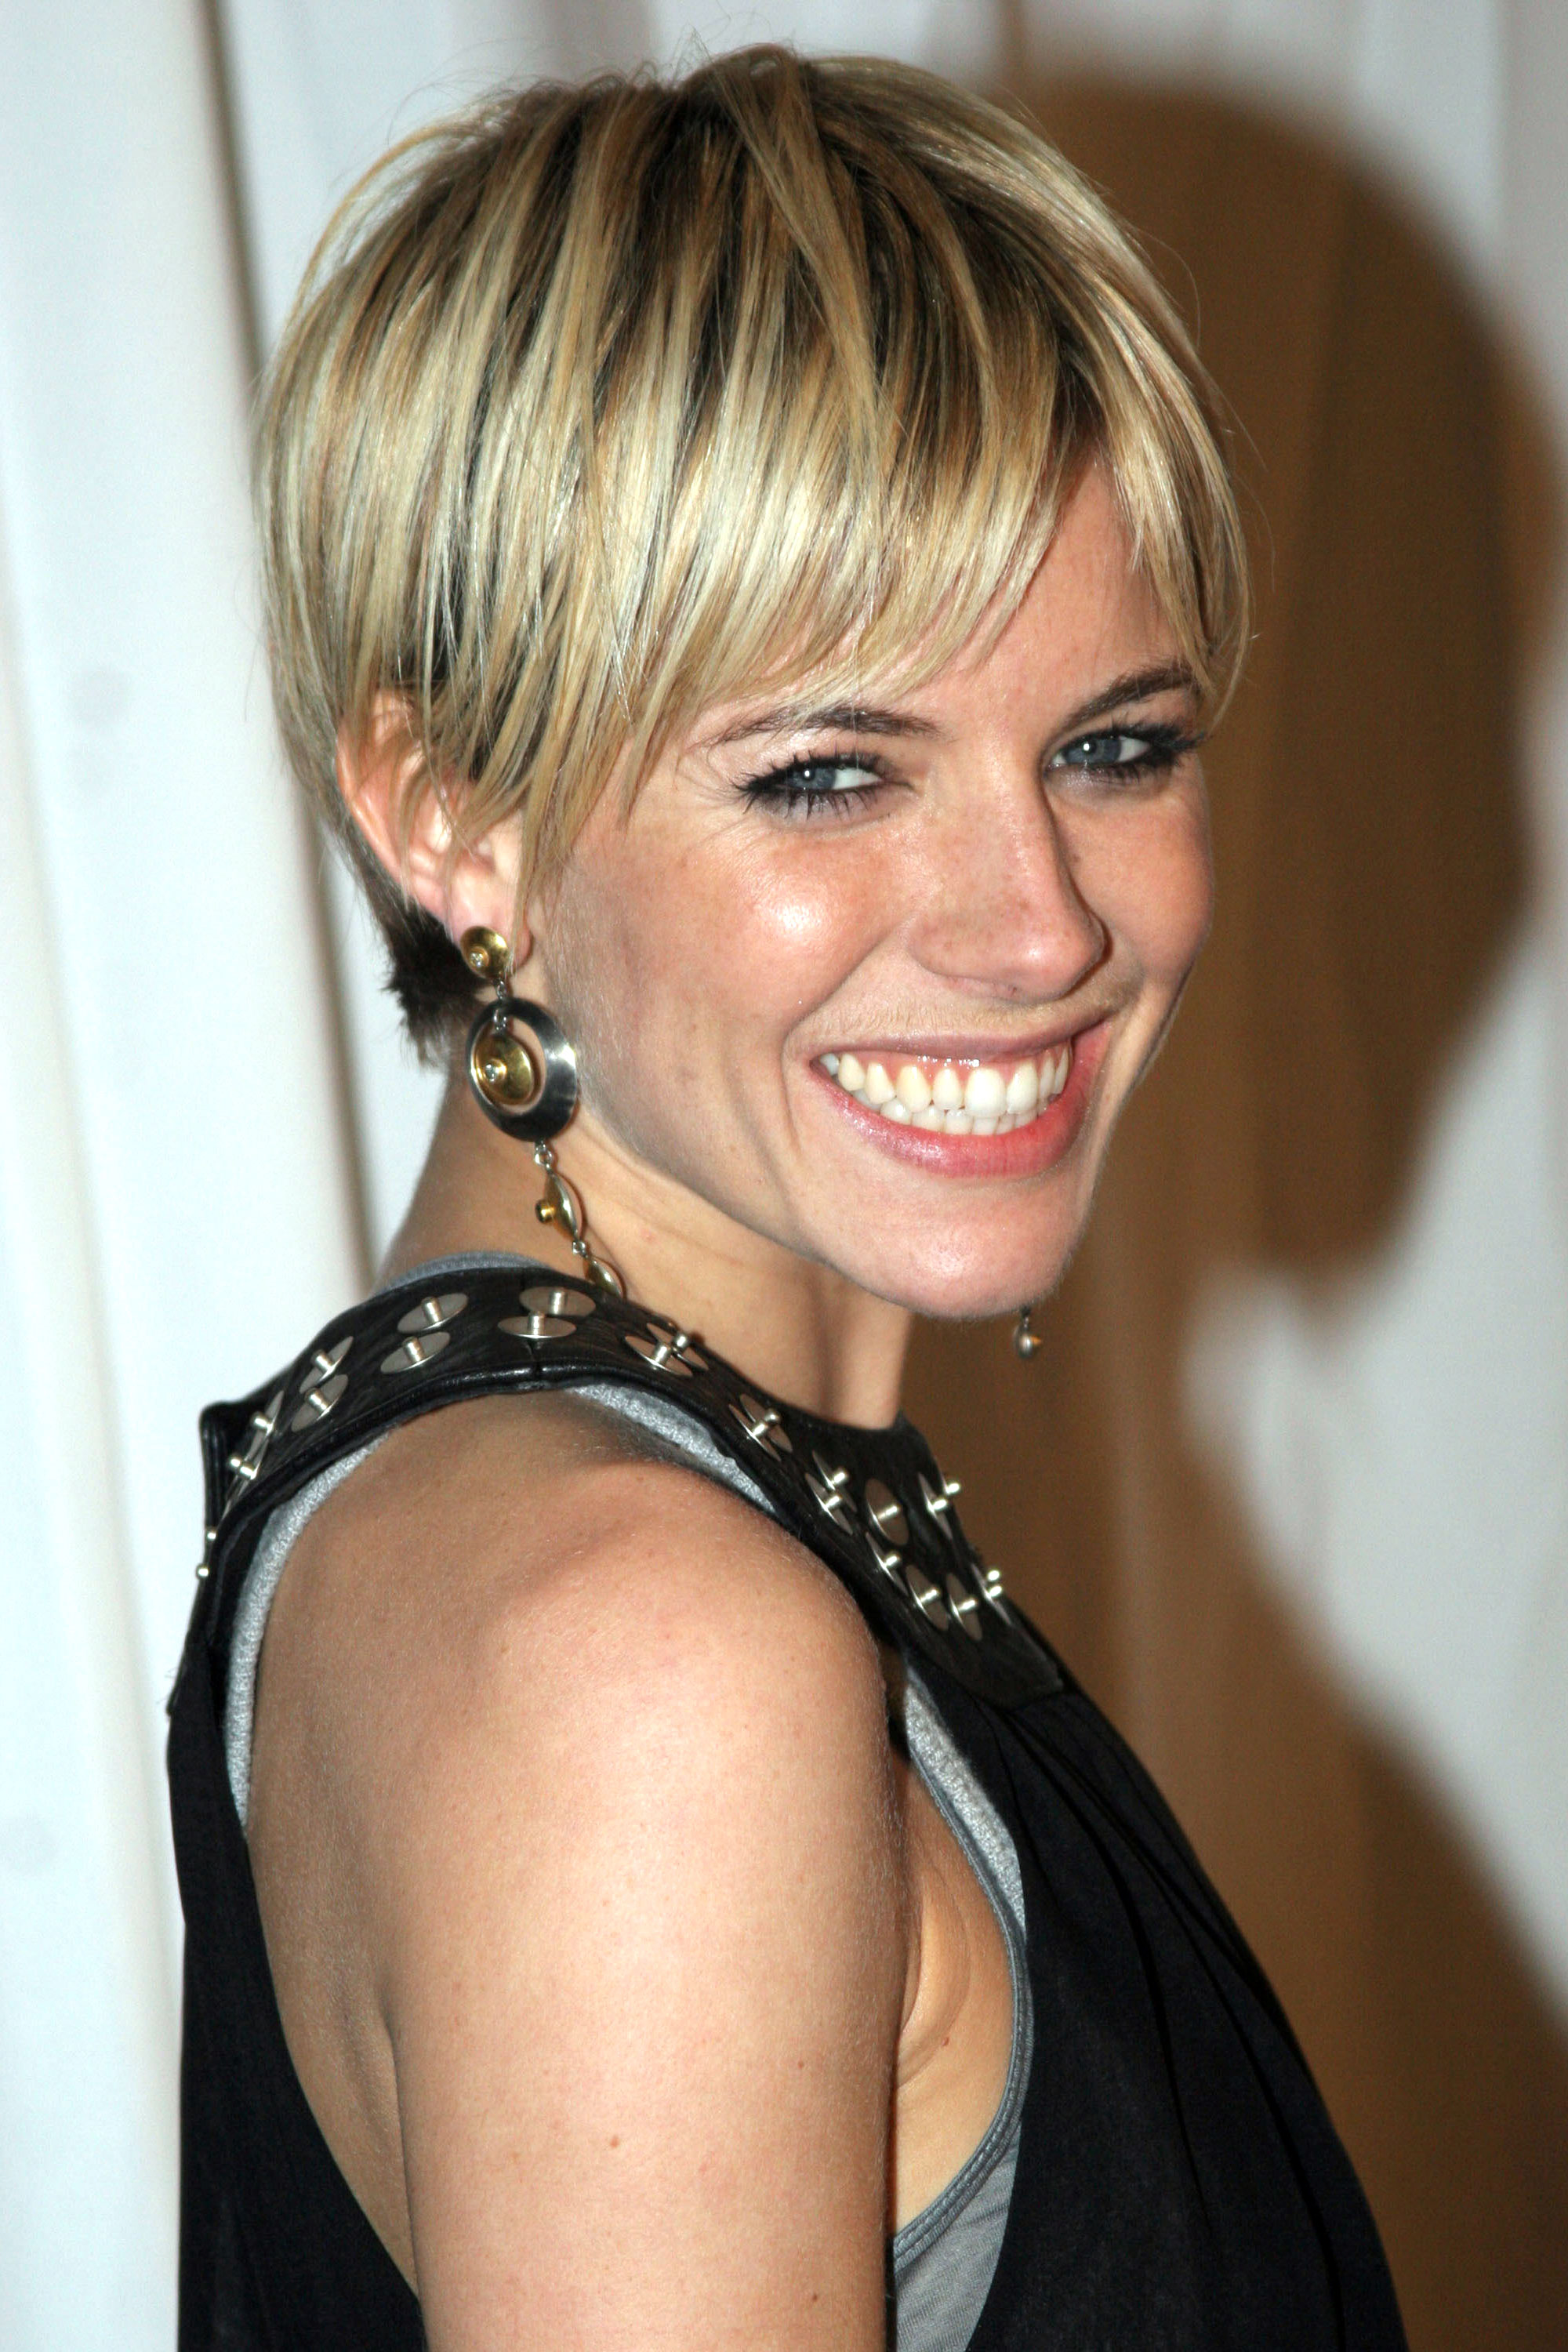 Fantastic 42 Pixie Cuts We Love For 2017 Short Pixie Hairstyles From Short Hairstyles Gunalazisus